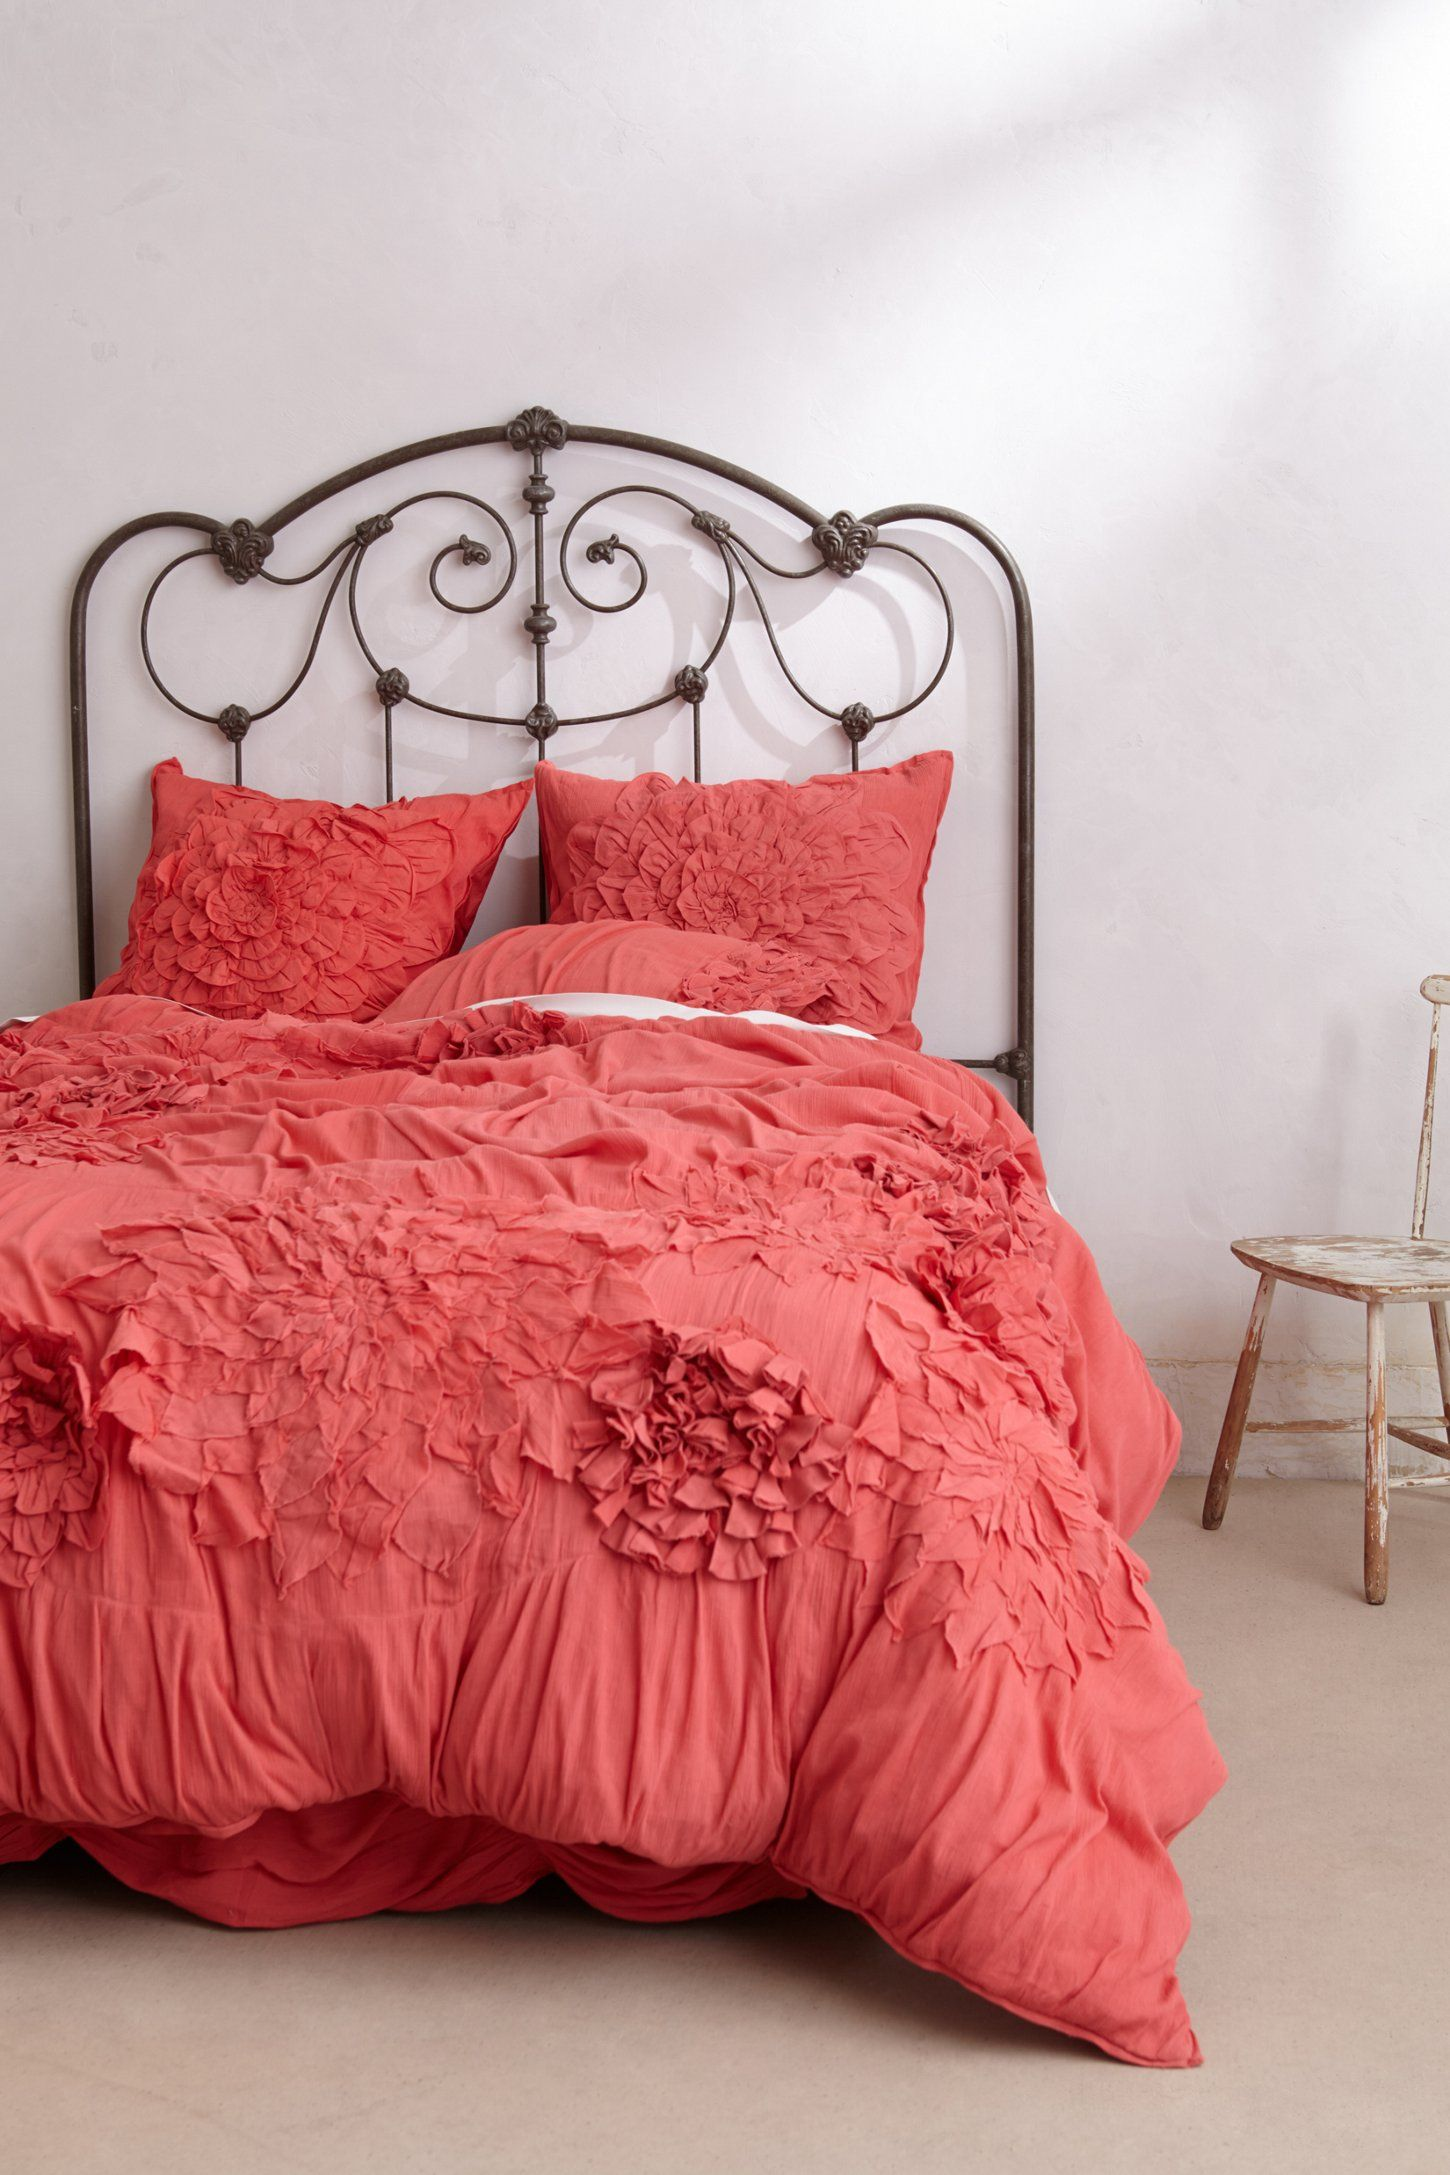 Anthropologie bedding - Anthropologie Georgina Queen Duvet Cover Pink Rose Bedding Free Shipping Nip